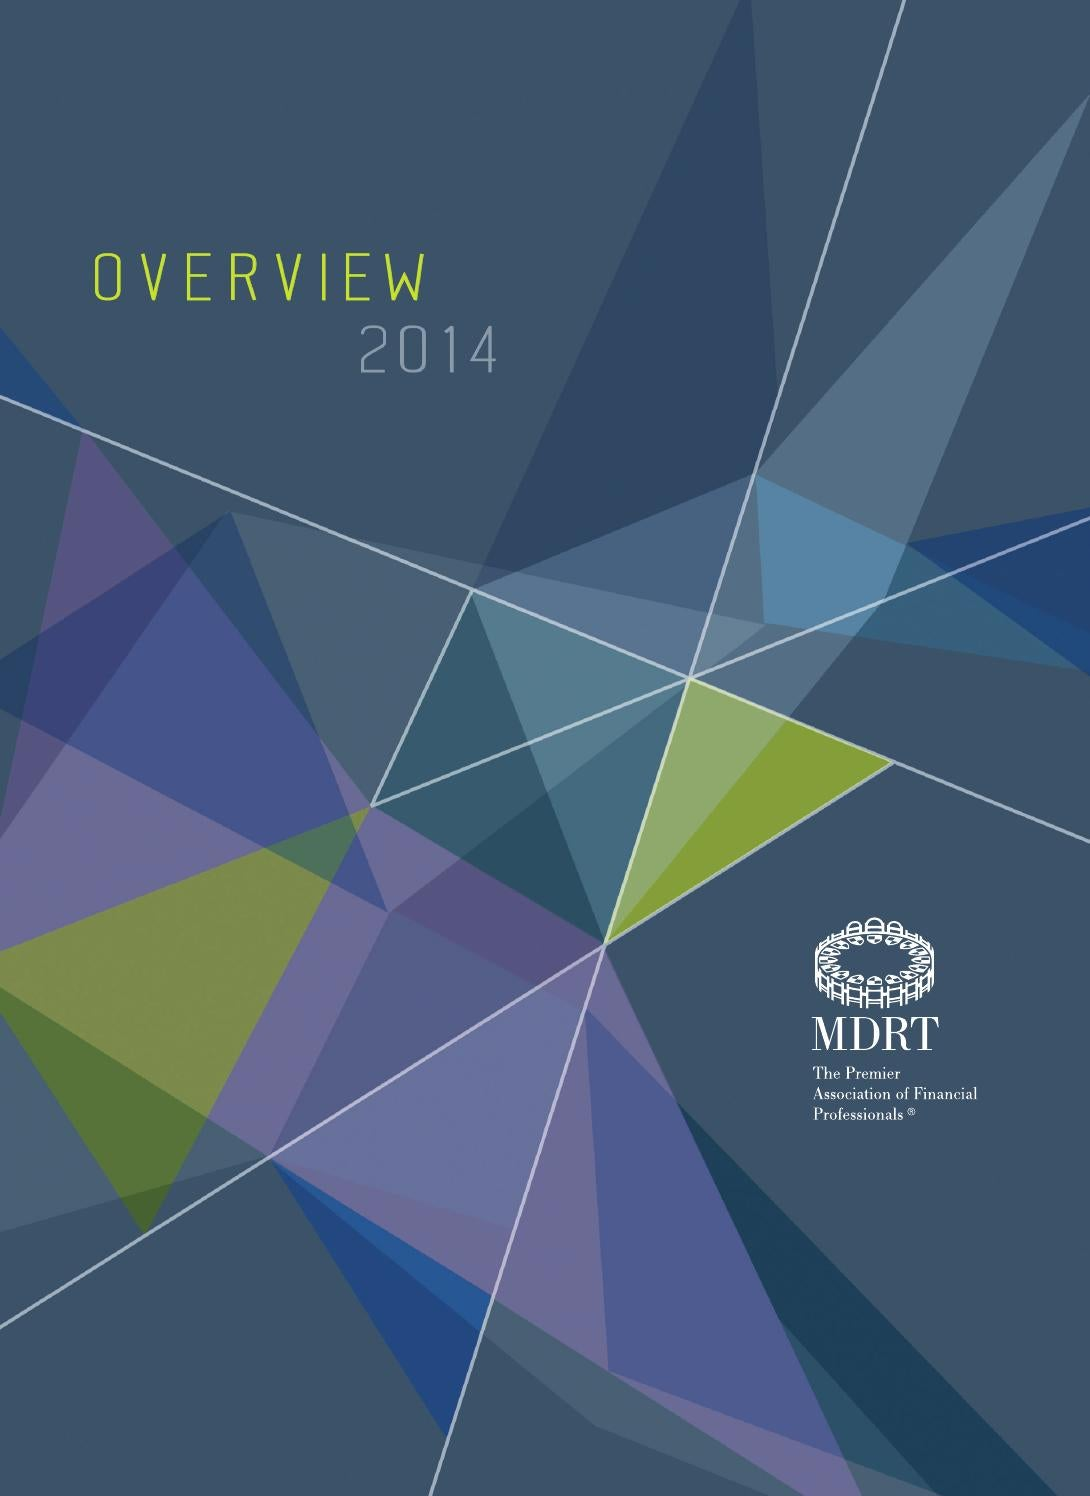 Mdrt Overview 2014 By Million Dollar Round Table Issuu